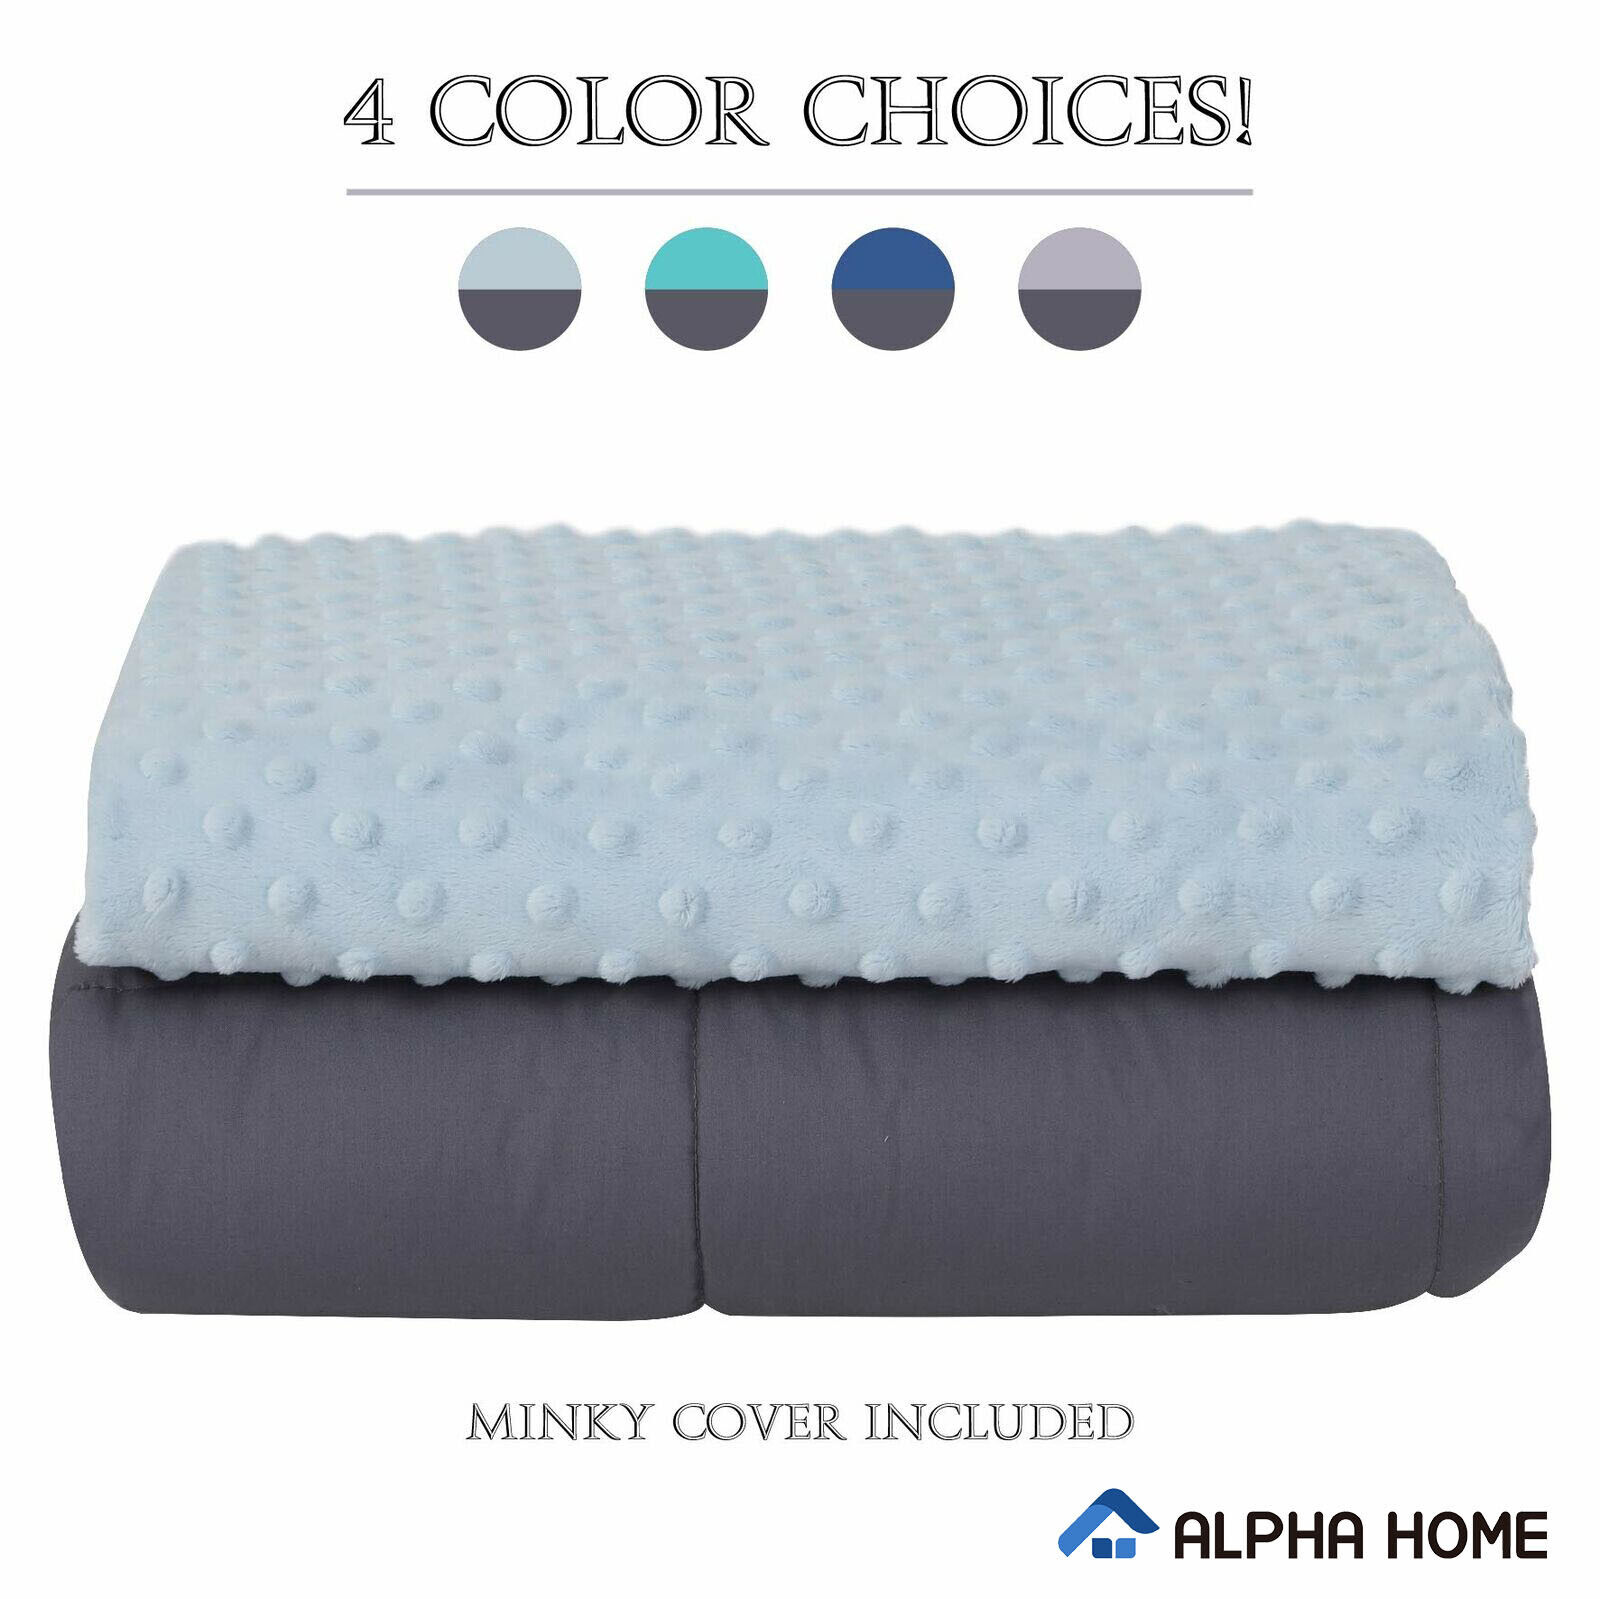 "ALPHA HOME Weighted Blanket 12lbs,48""x78"" Heavy Blanket for"